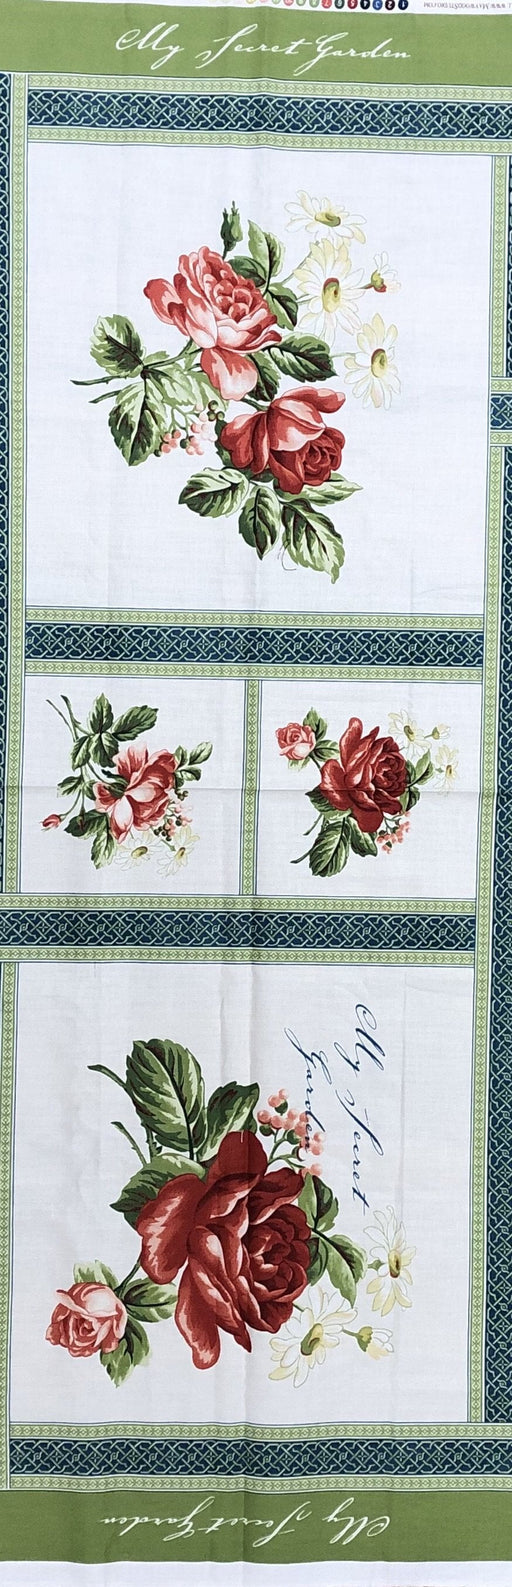 Copy of My Secret Garden by Marti Mitchell - 1/2 Panel REMNANT - Maywood Studio - Gorgeous florals and tonals !